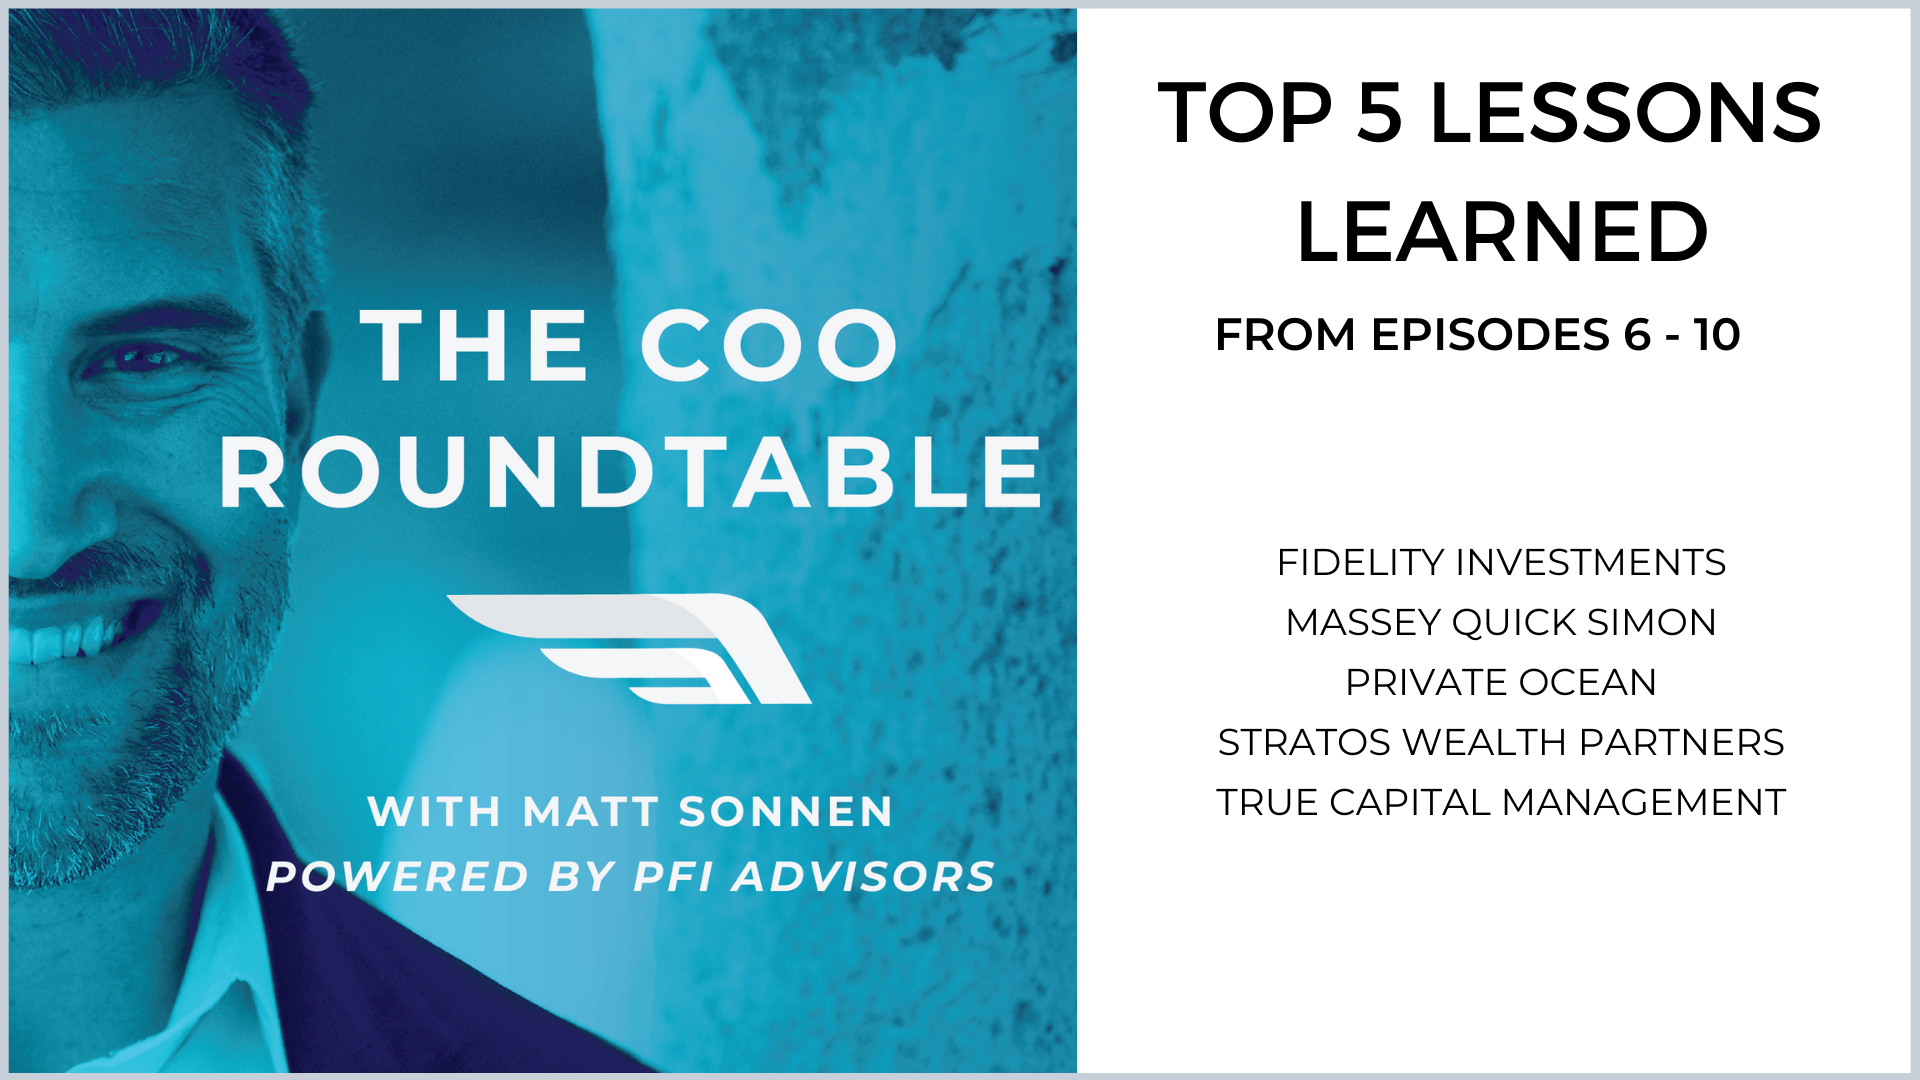 Top 5 Lessons Learned from  Episodes 6-10 of The COO Roundtable